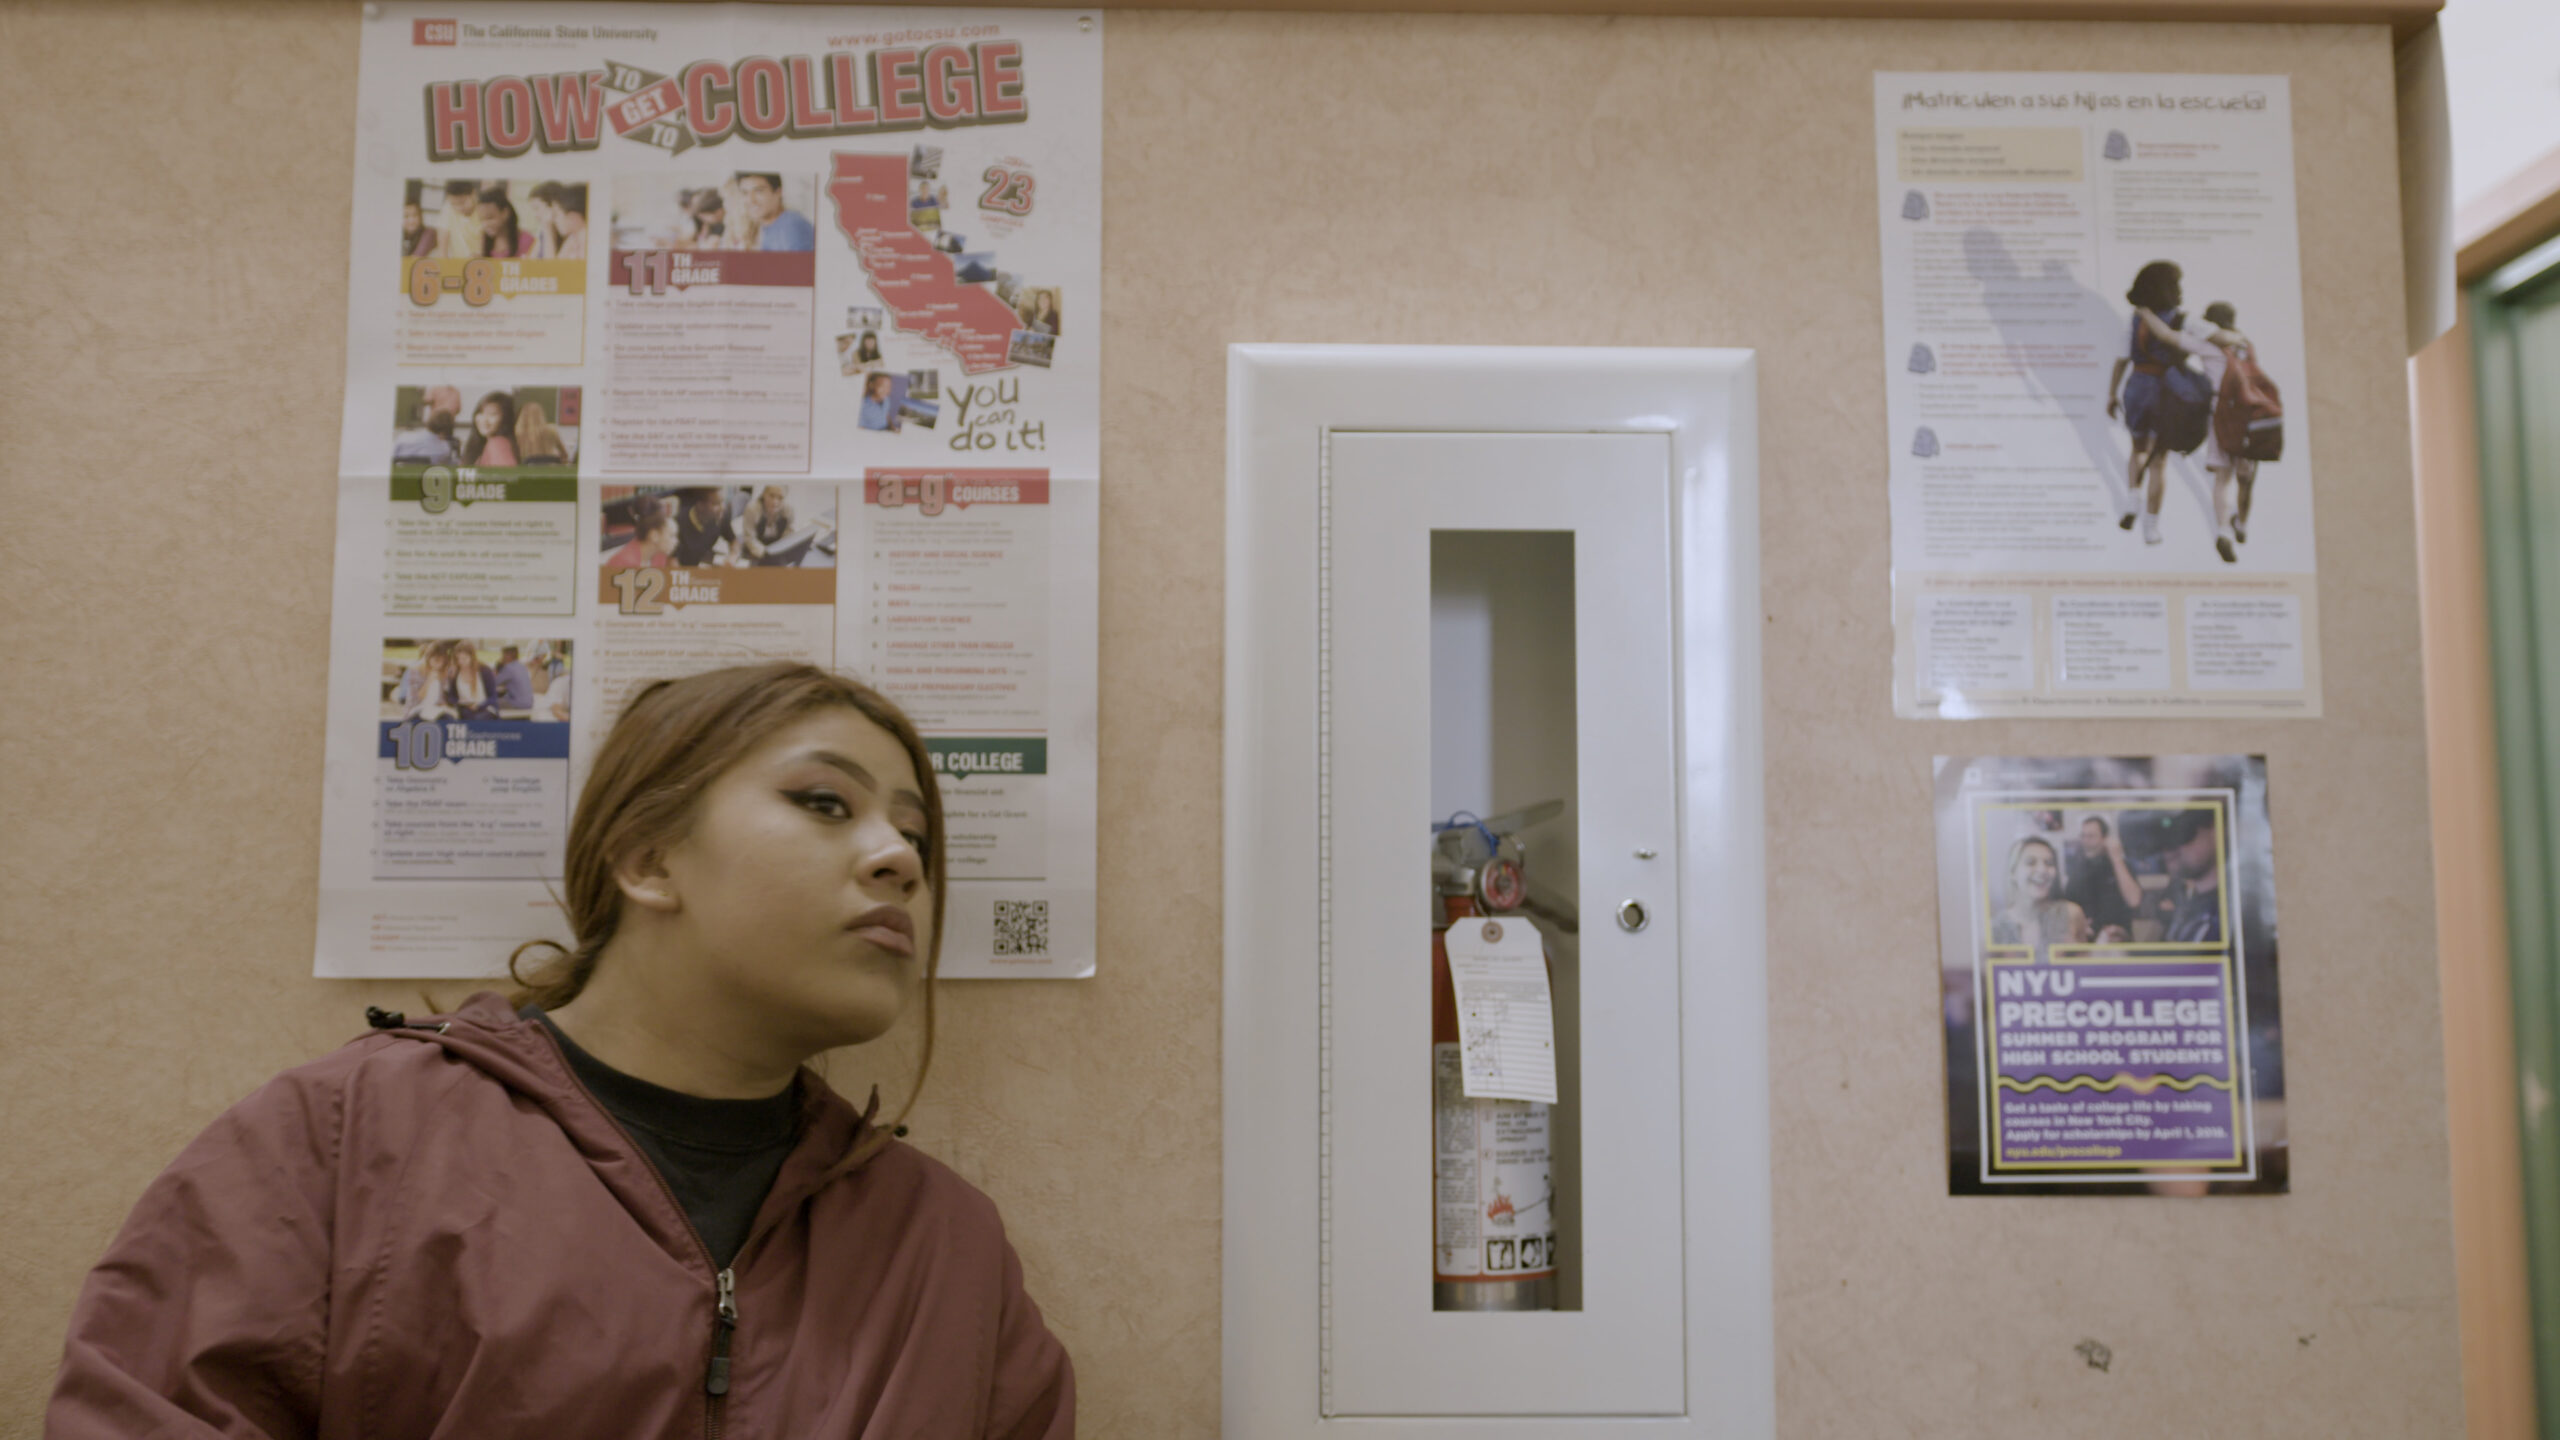 Girl sitting in front of a wall with college information posters behind her